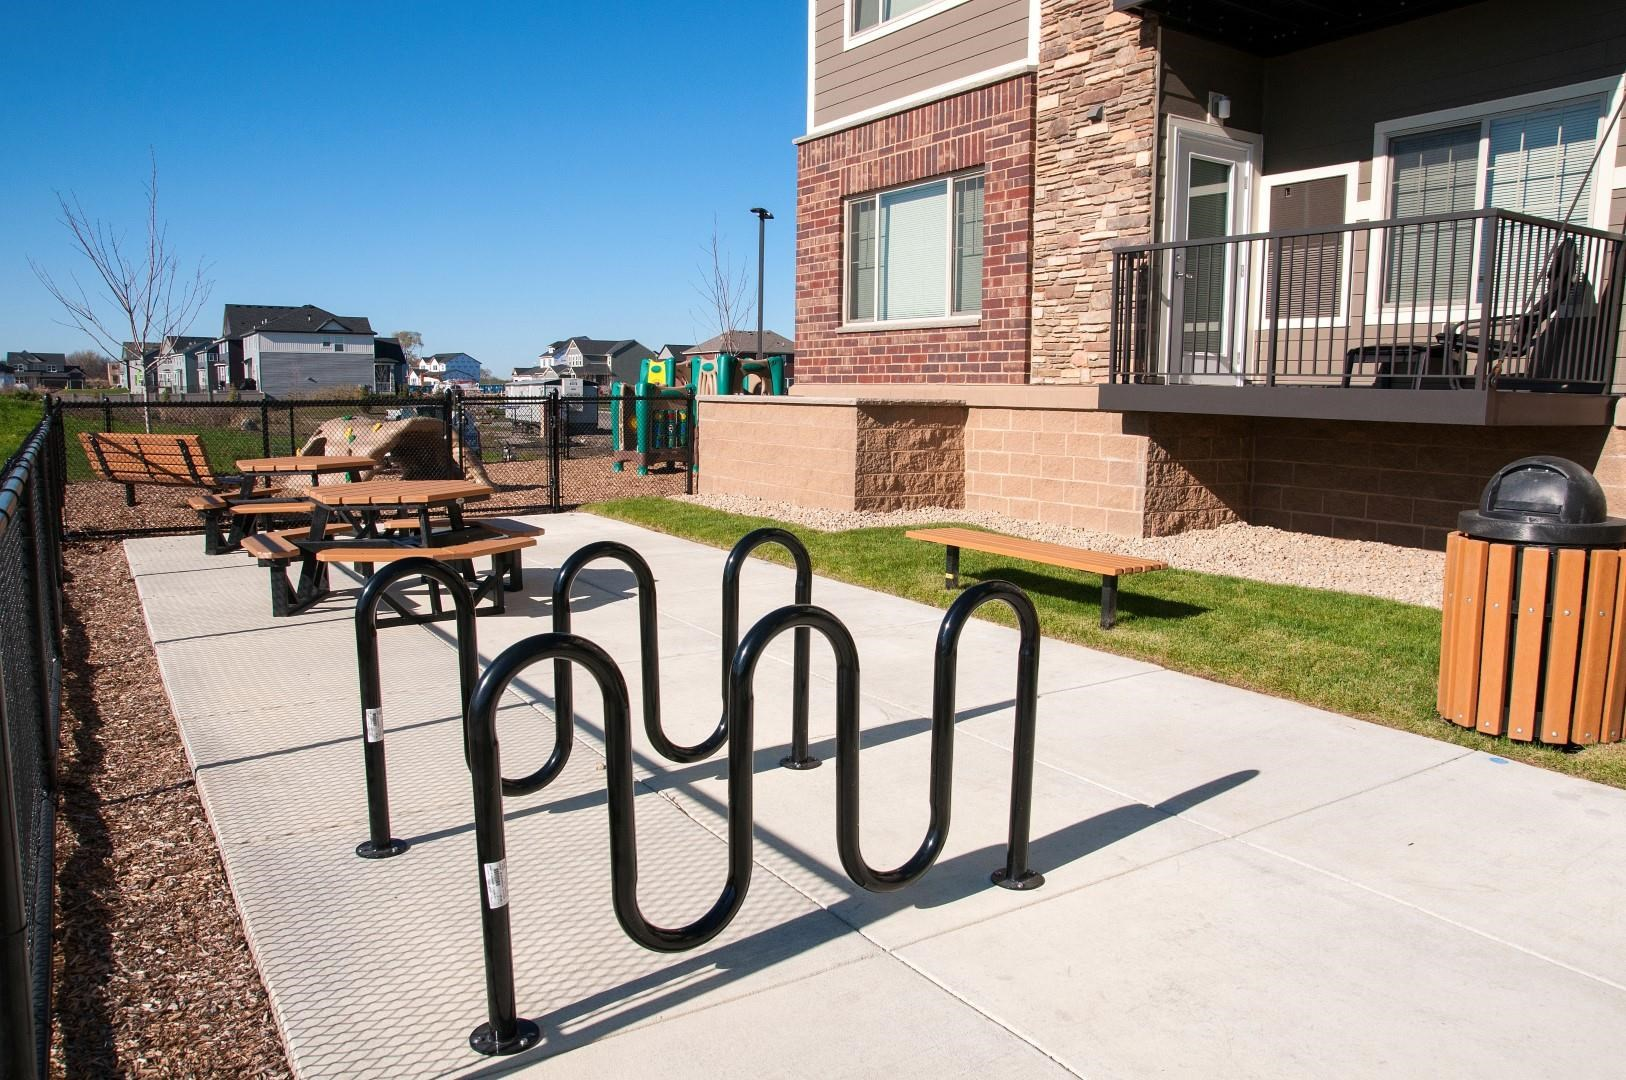 Carver Crossing Apartments Outdoor Bike Rakes on Patio